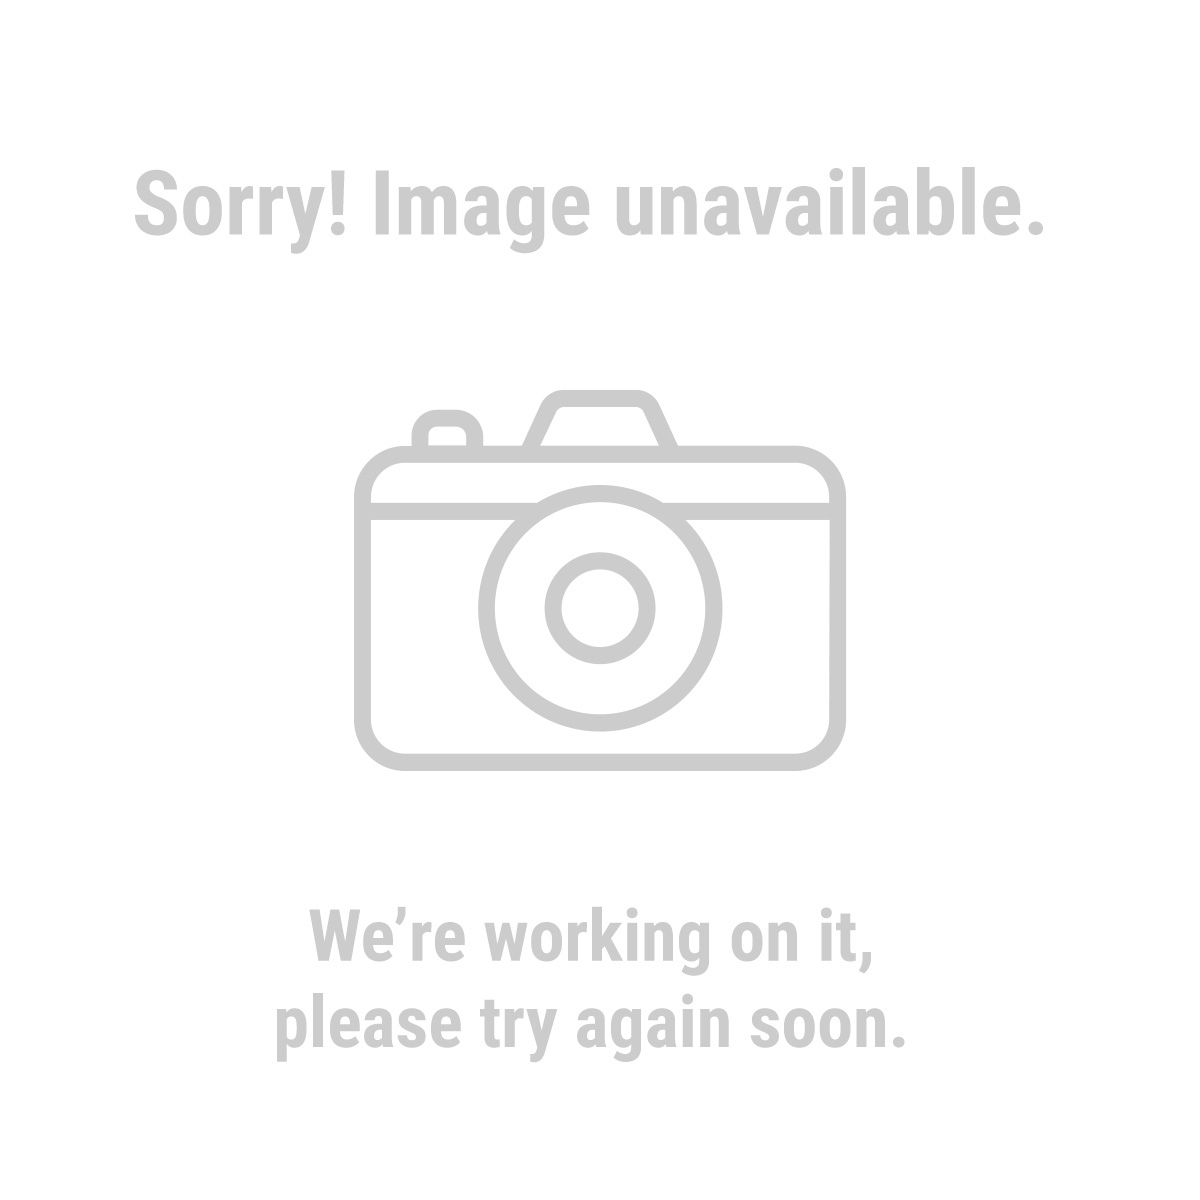 HARDY 62525 Professional Mechanic's Gloves Large